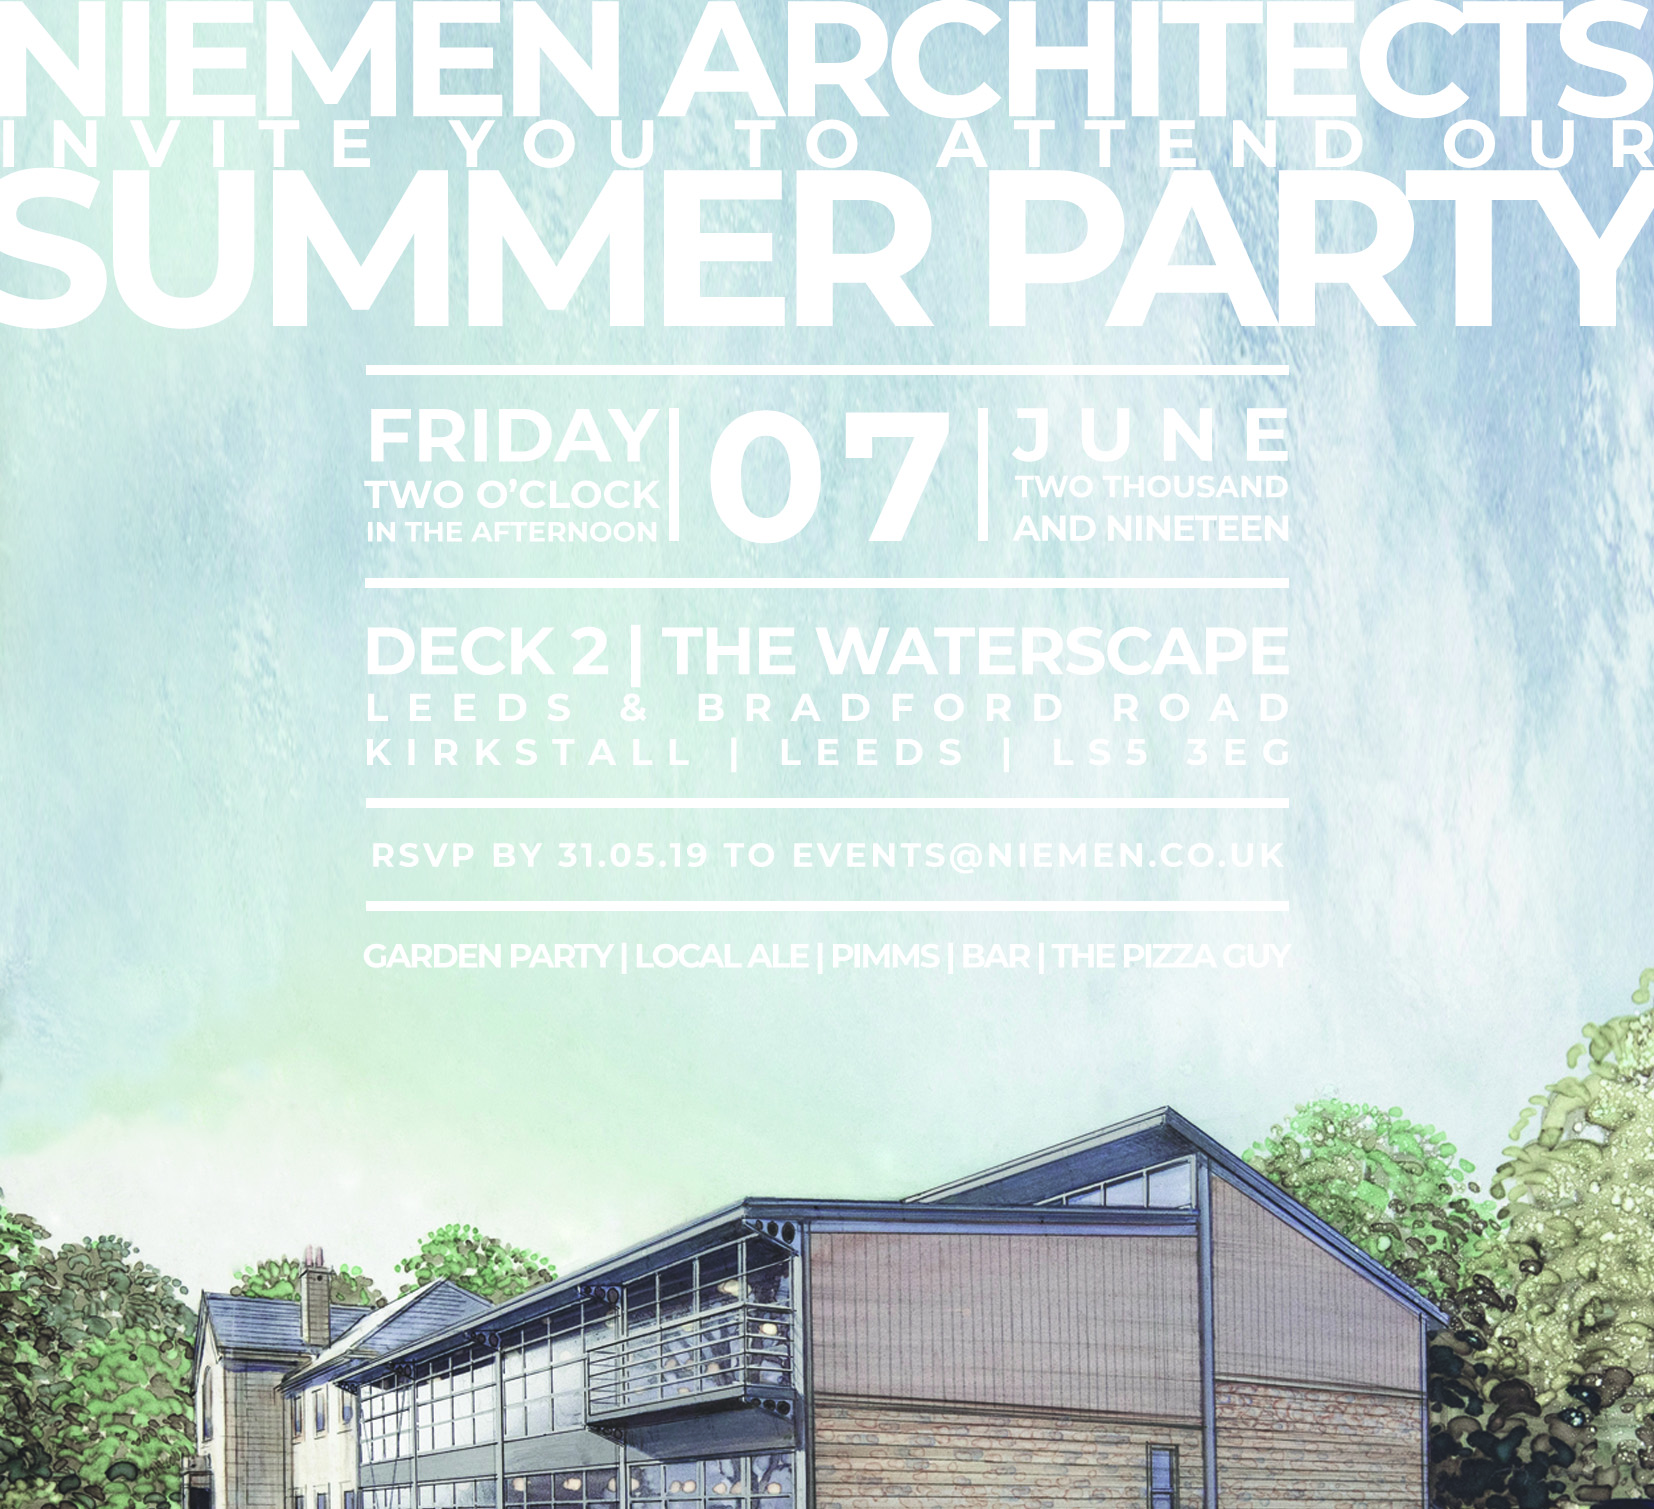 Niemen Architects Summer Party